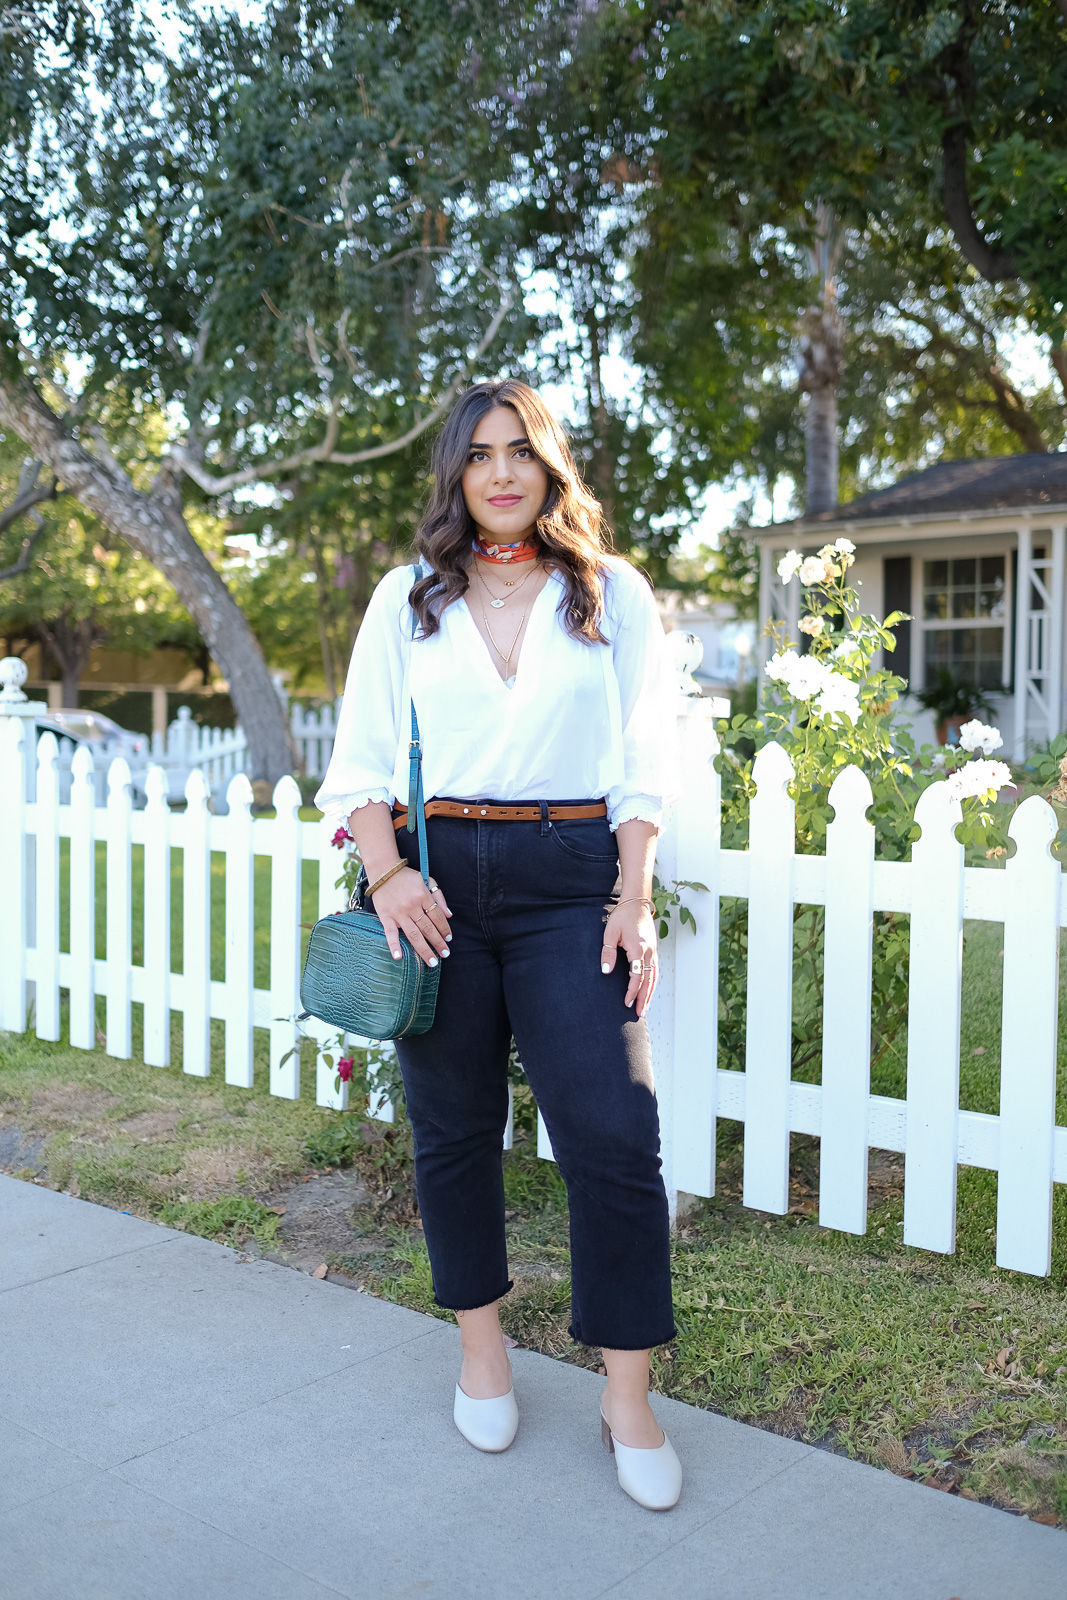 White blouse Summer transitional look